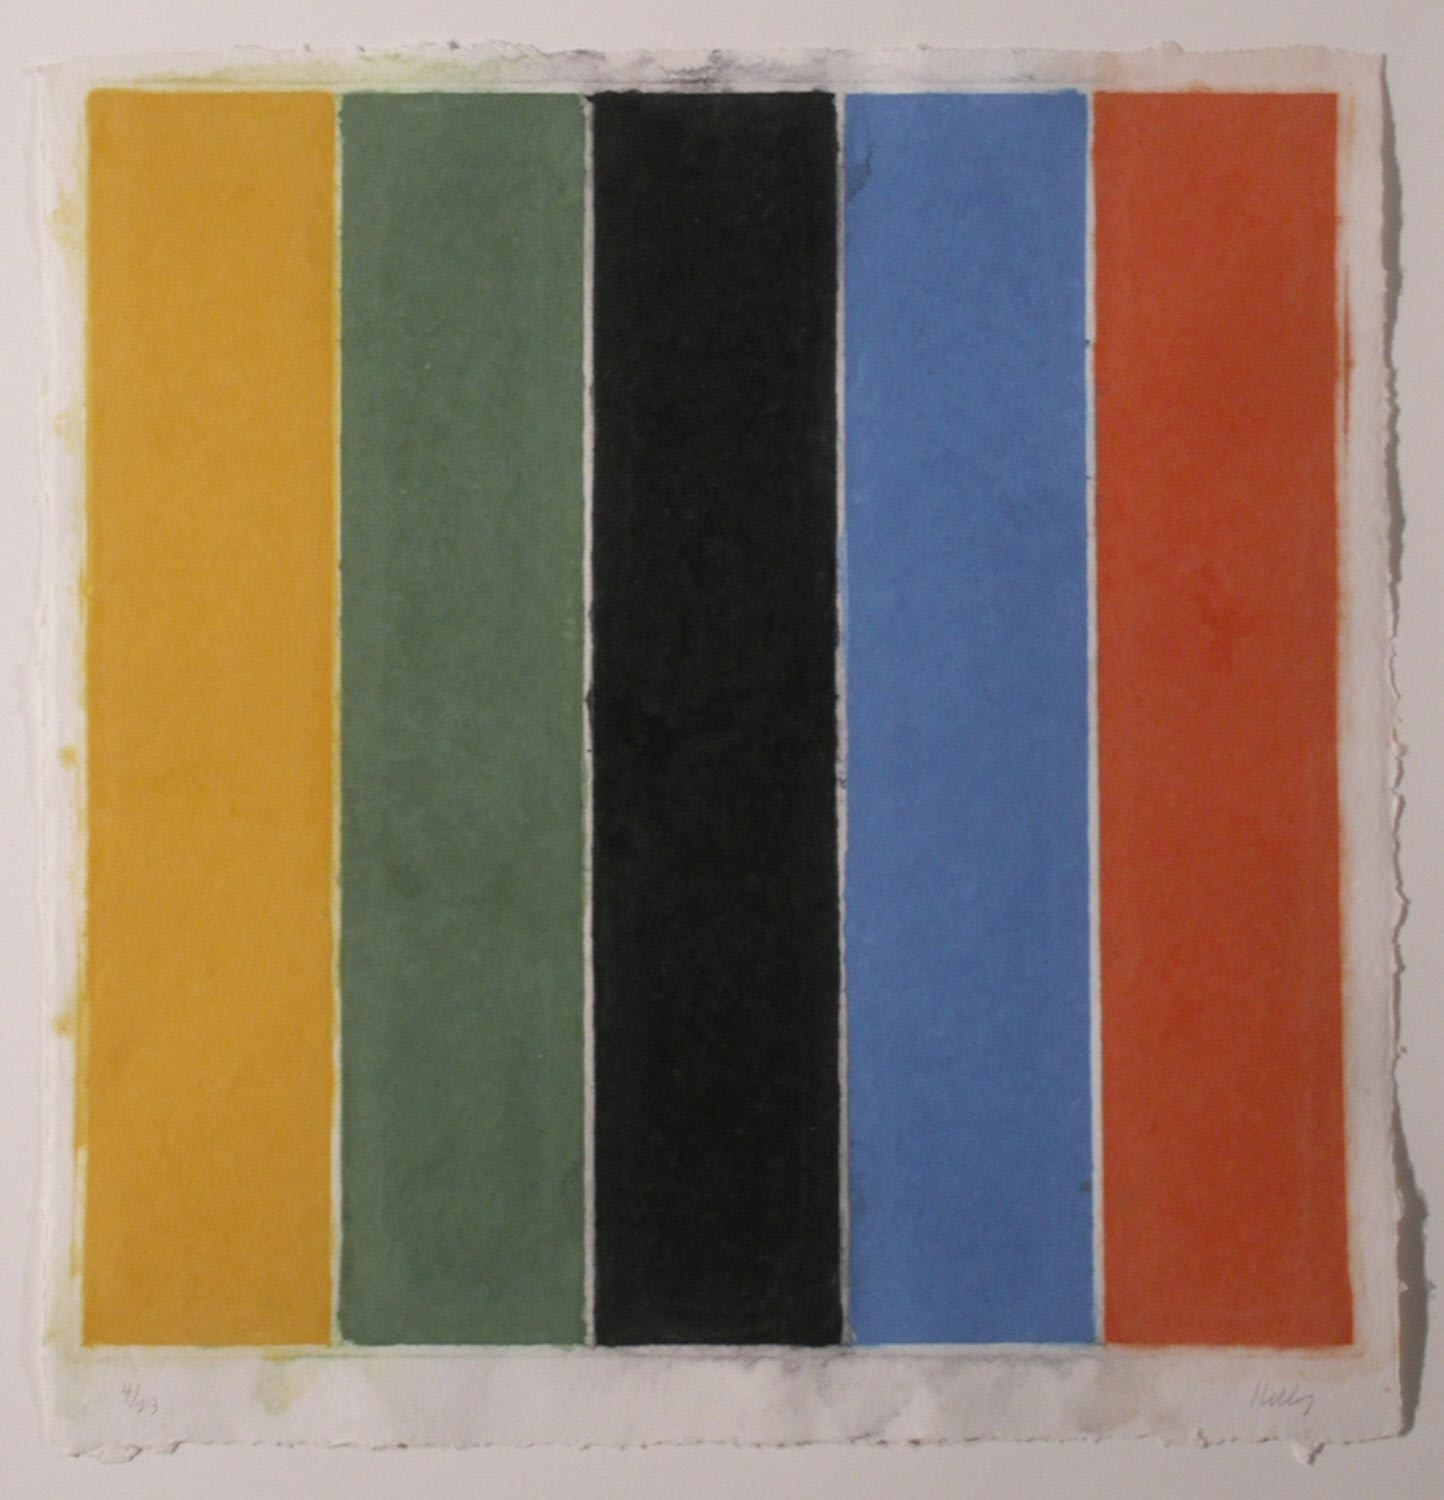 Colored Paper Images XIII (Yellow/Green/Black/Blue/Orange)